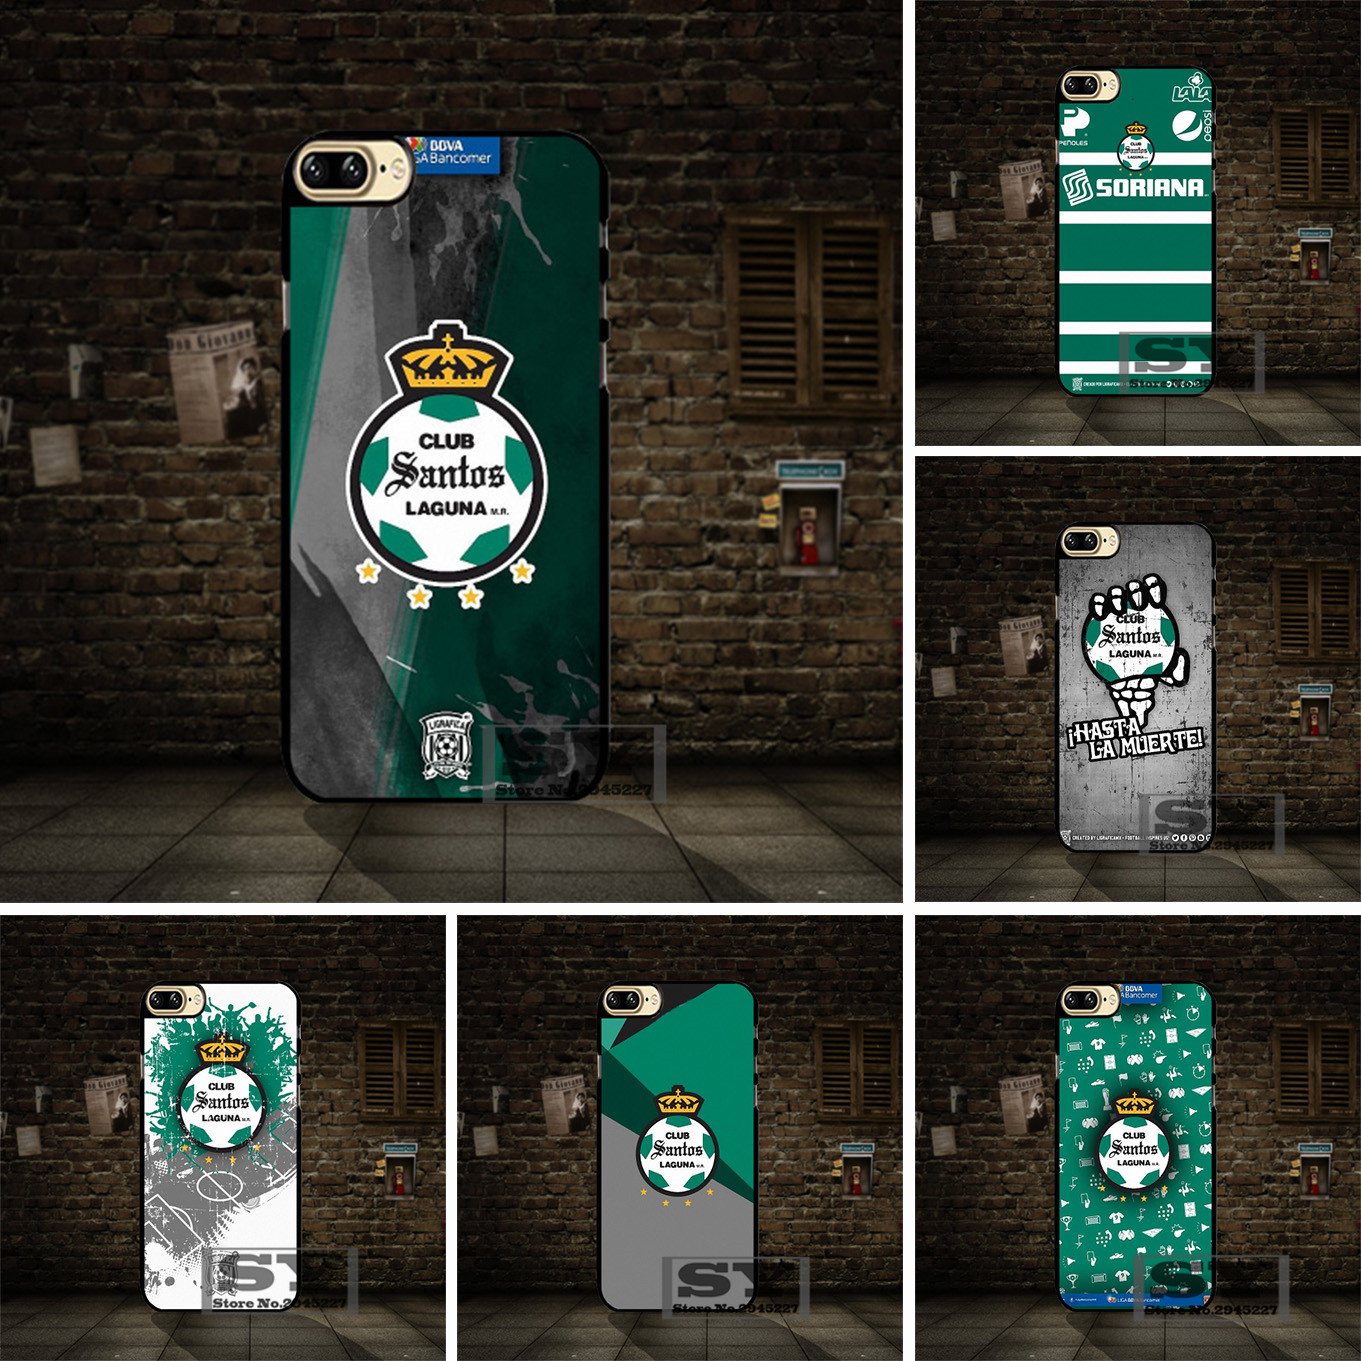 buy online cfc95 2183f US $4.99  Santos Laguna cell phone Case Cover For Samsung Galaxy S2 S3 S4  S5 Mini S6 S7 S8 Edge Plus A3 A5 A7 Note on Aliexpress.com   Alibaba Group